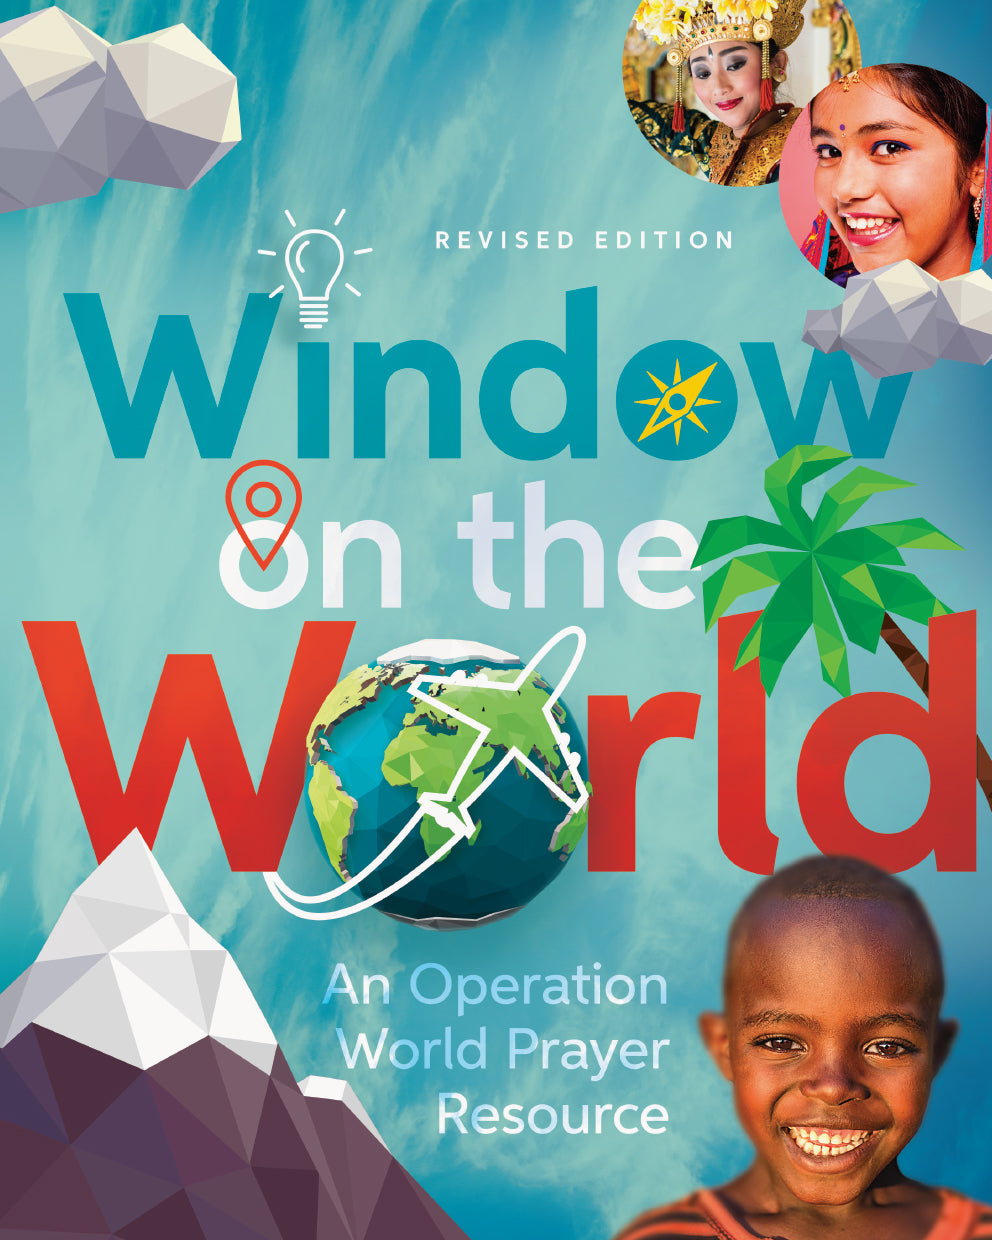 Window on the World - An Operation World Prayer Resource